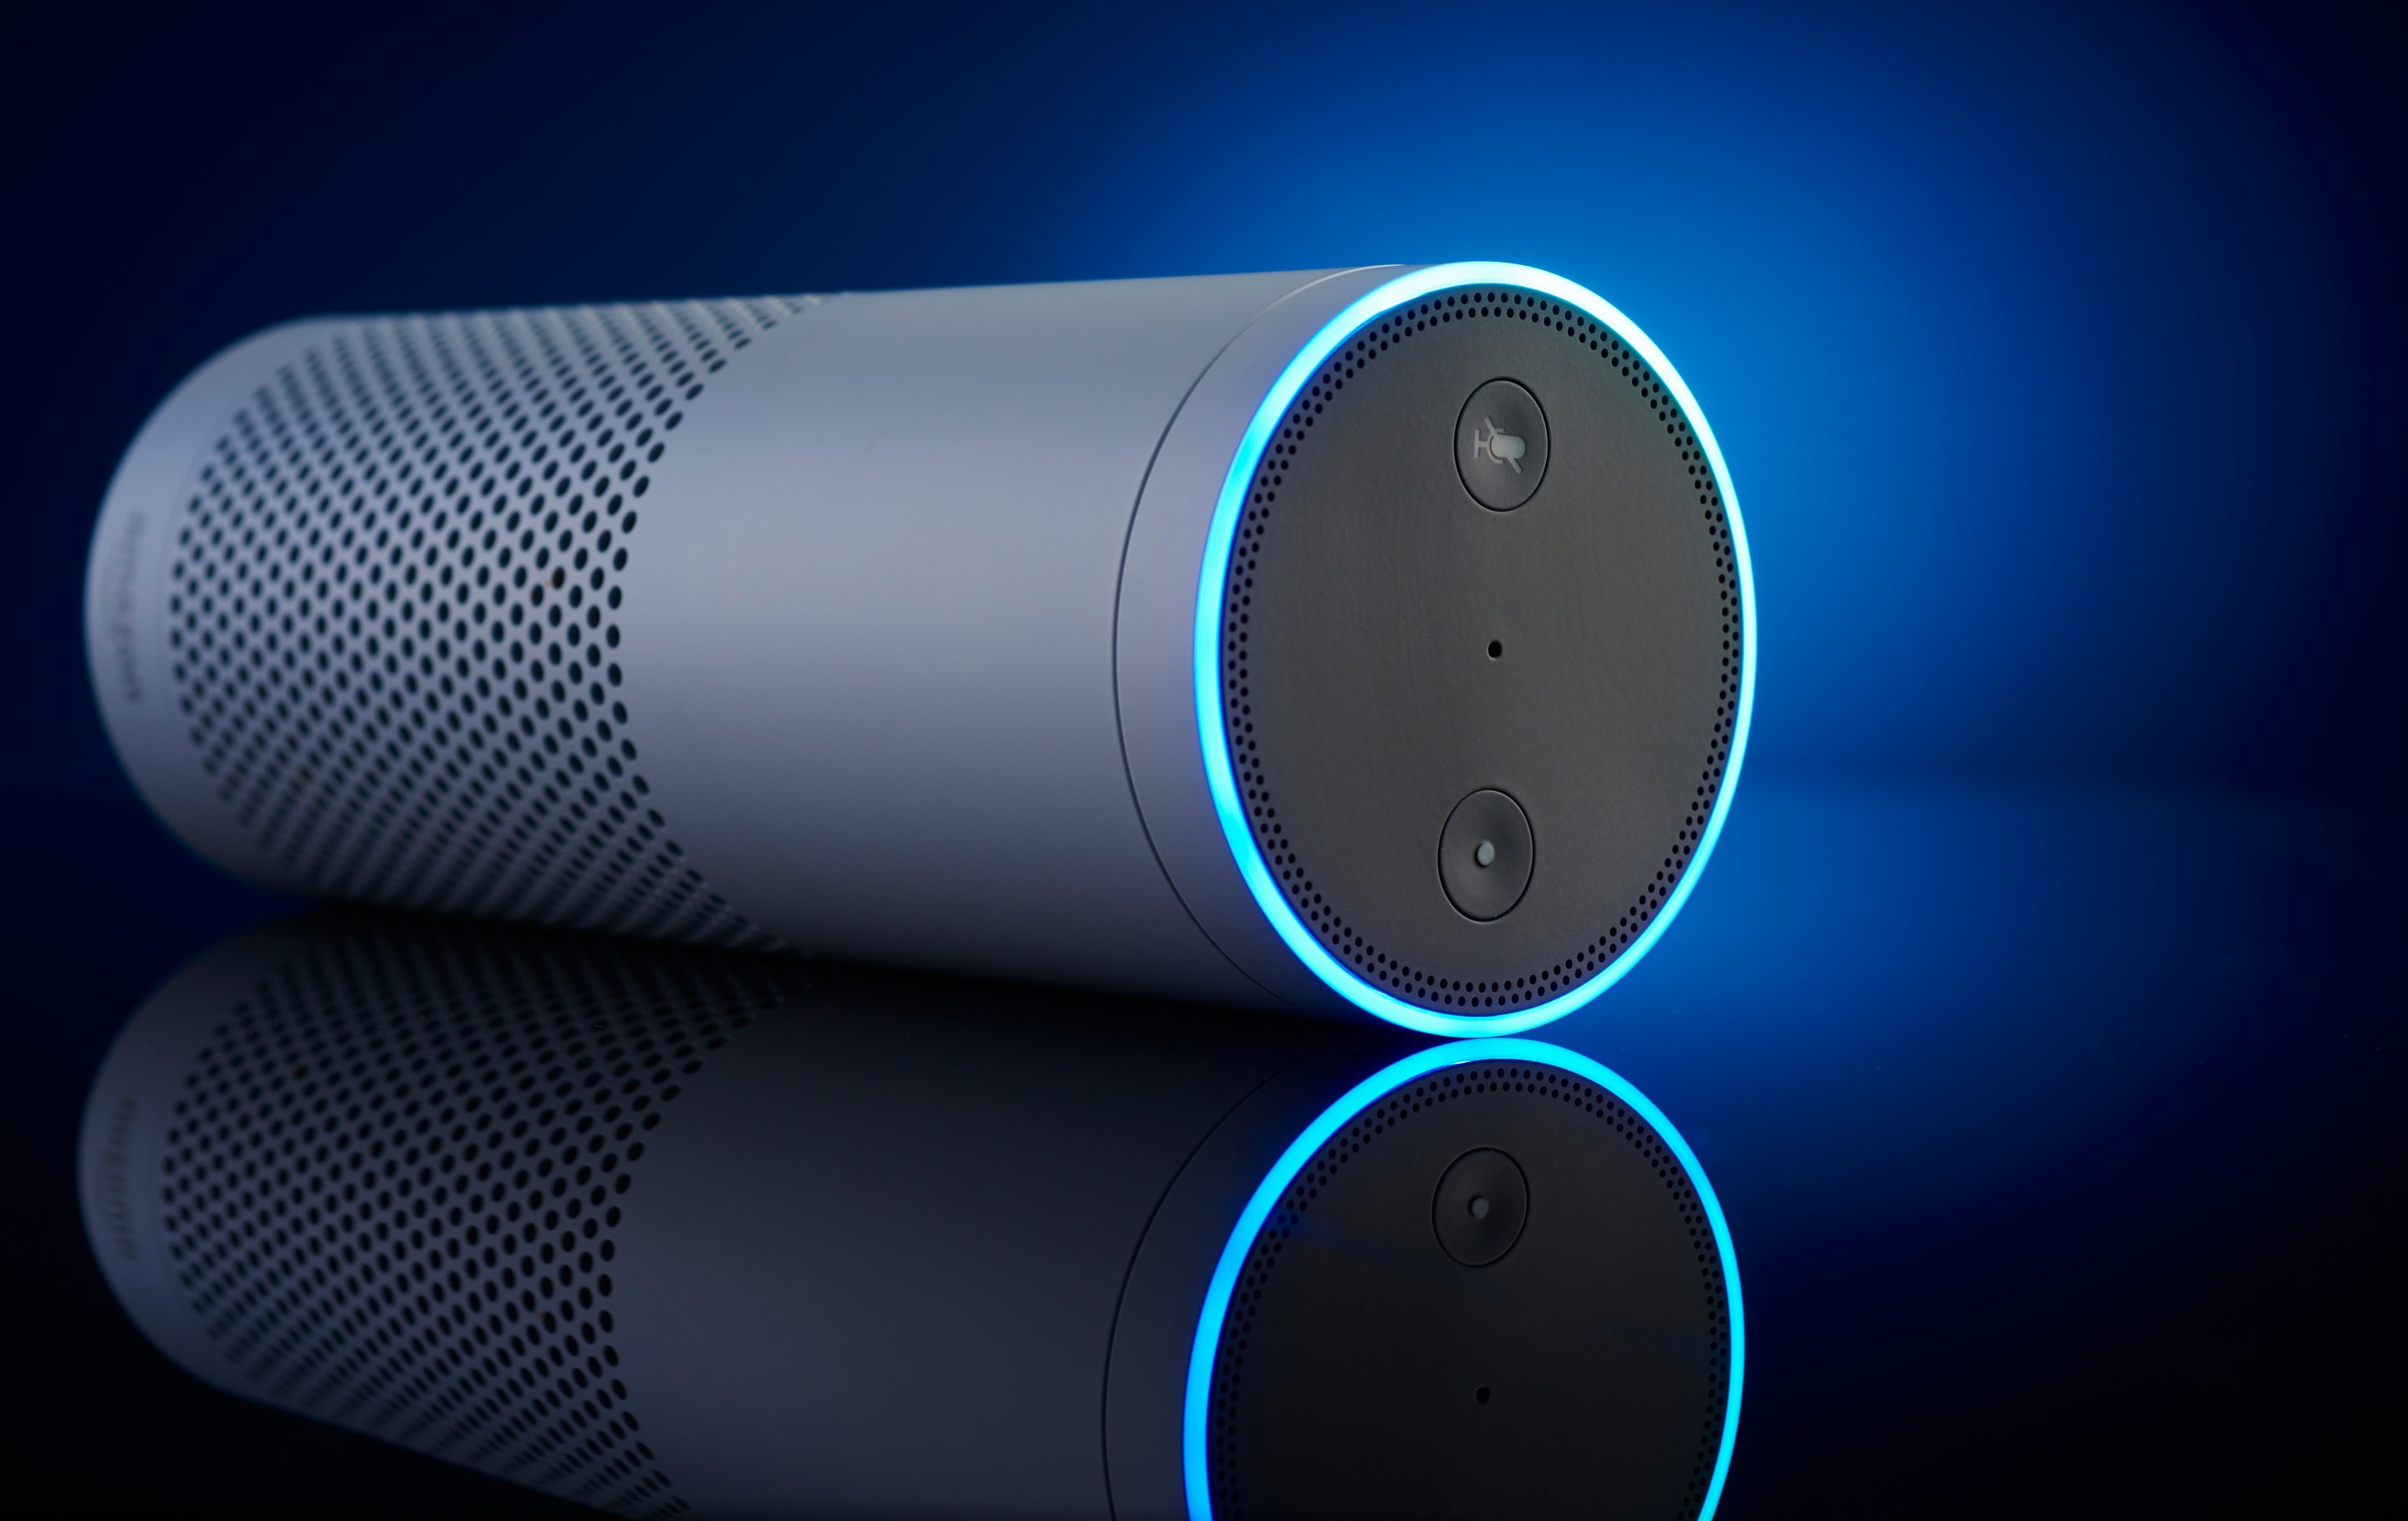 An Amazon Echo multimedia smart speaker, controlled with the Alexa voice assistant. Experts fear malicious trolls will figure out how to misuse Amazon's new crowdsourcing portal.